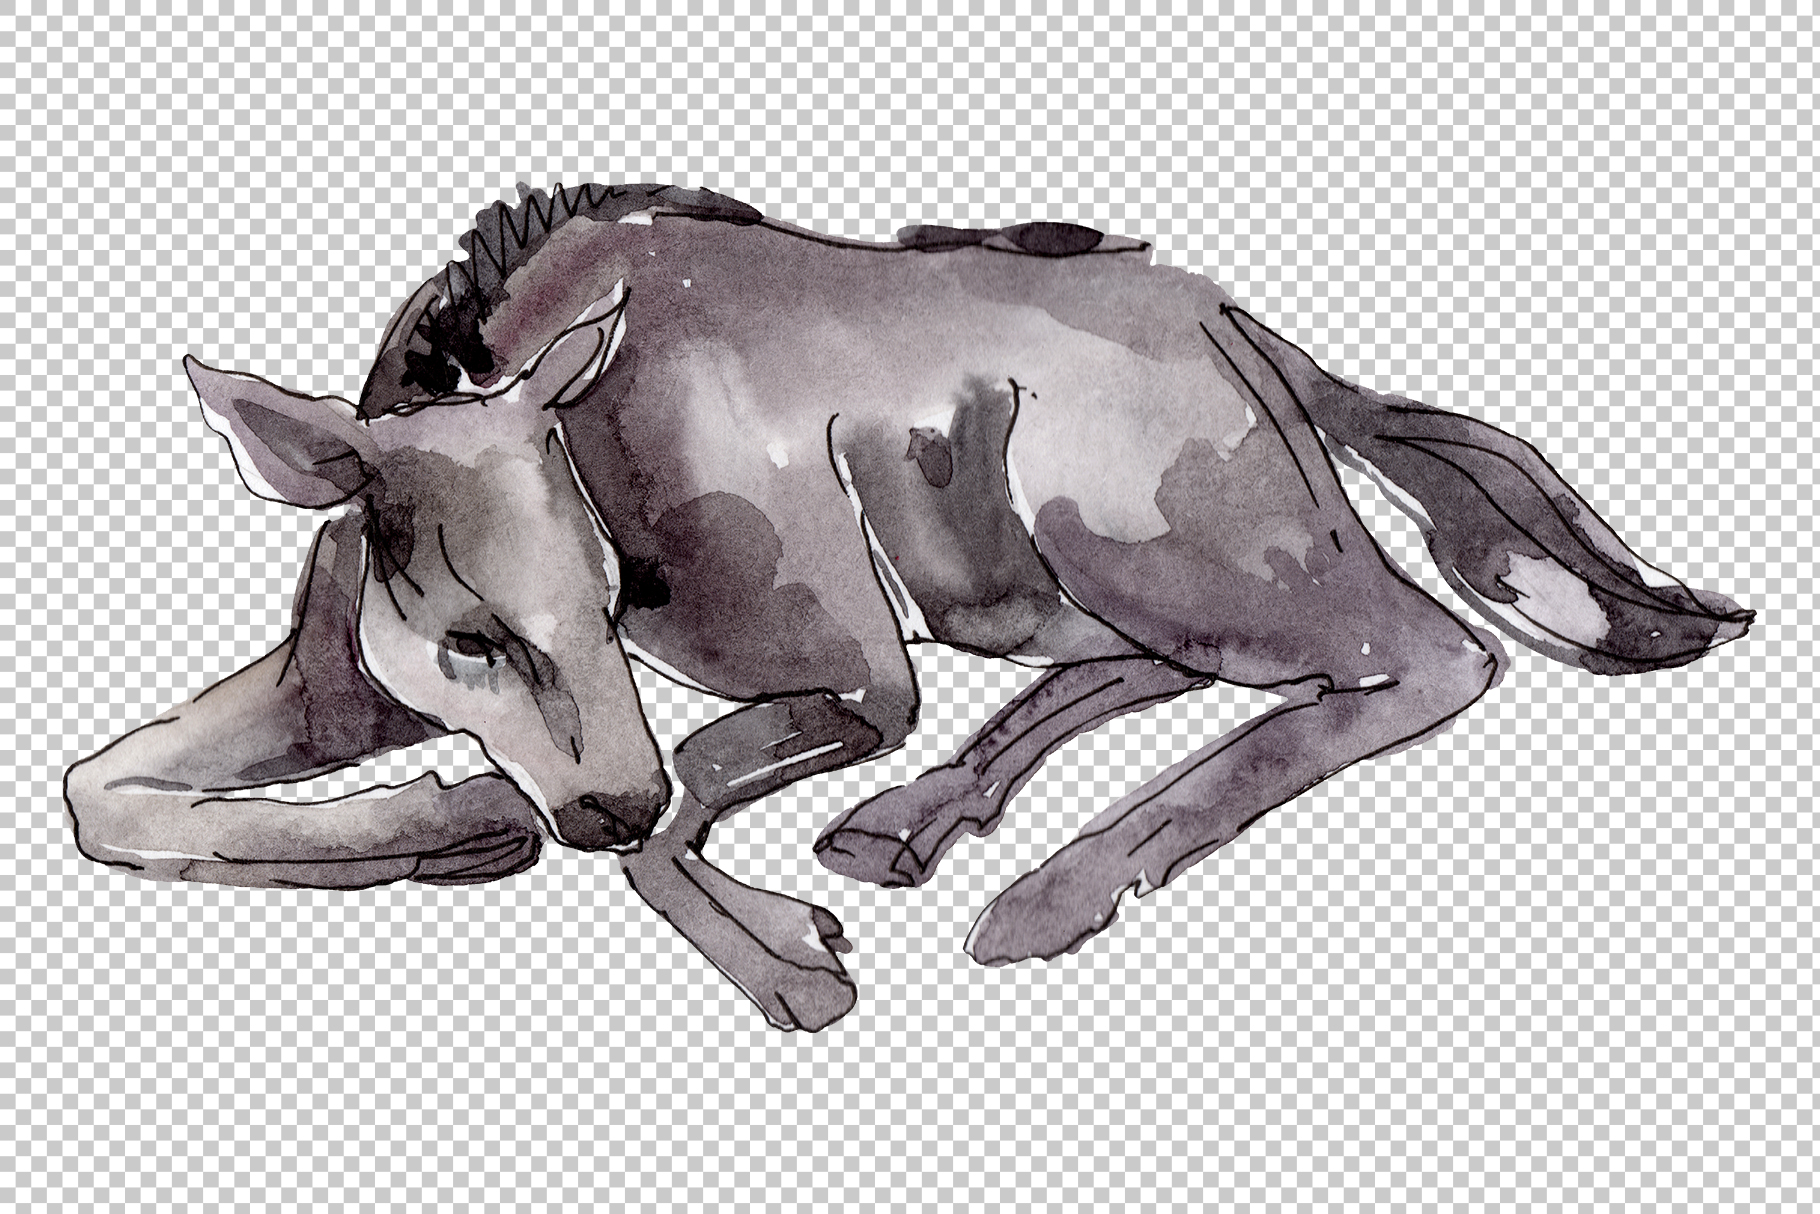 Farm animals Horse, foal Watercolor png example image 4